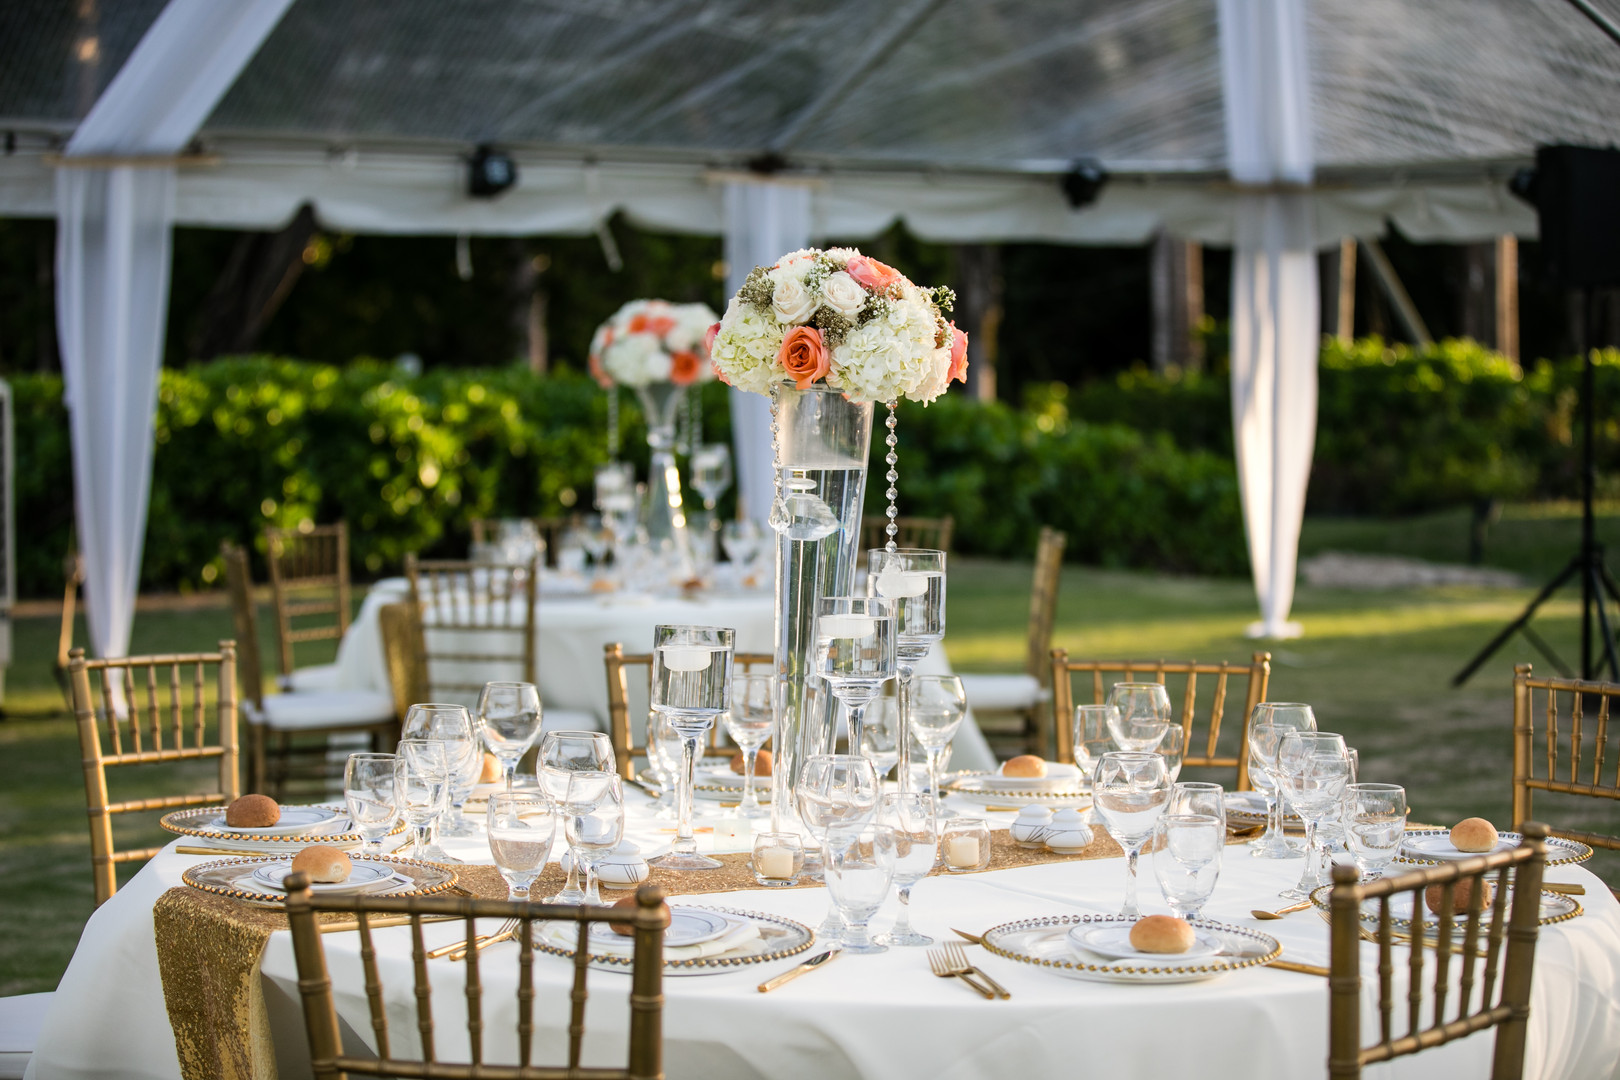 Table setting at garden wedding